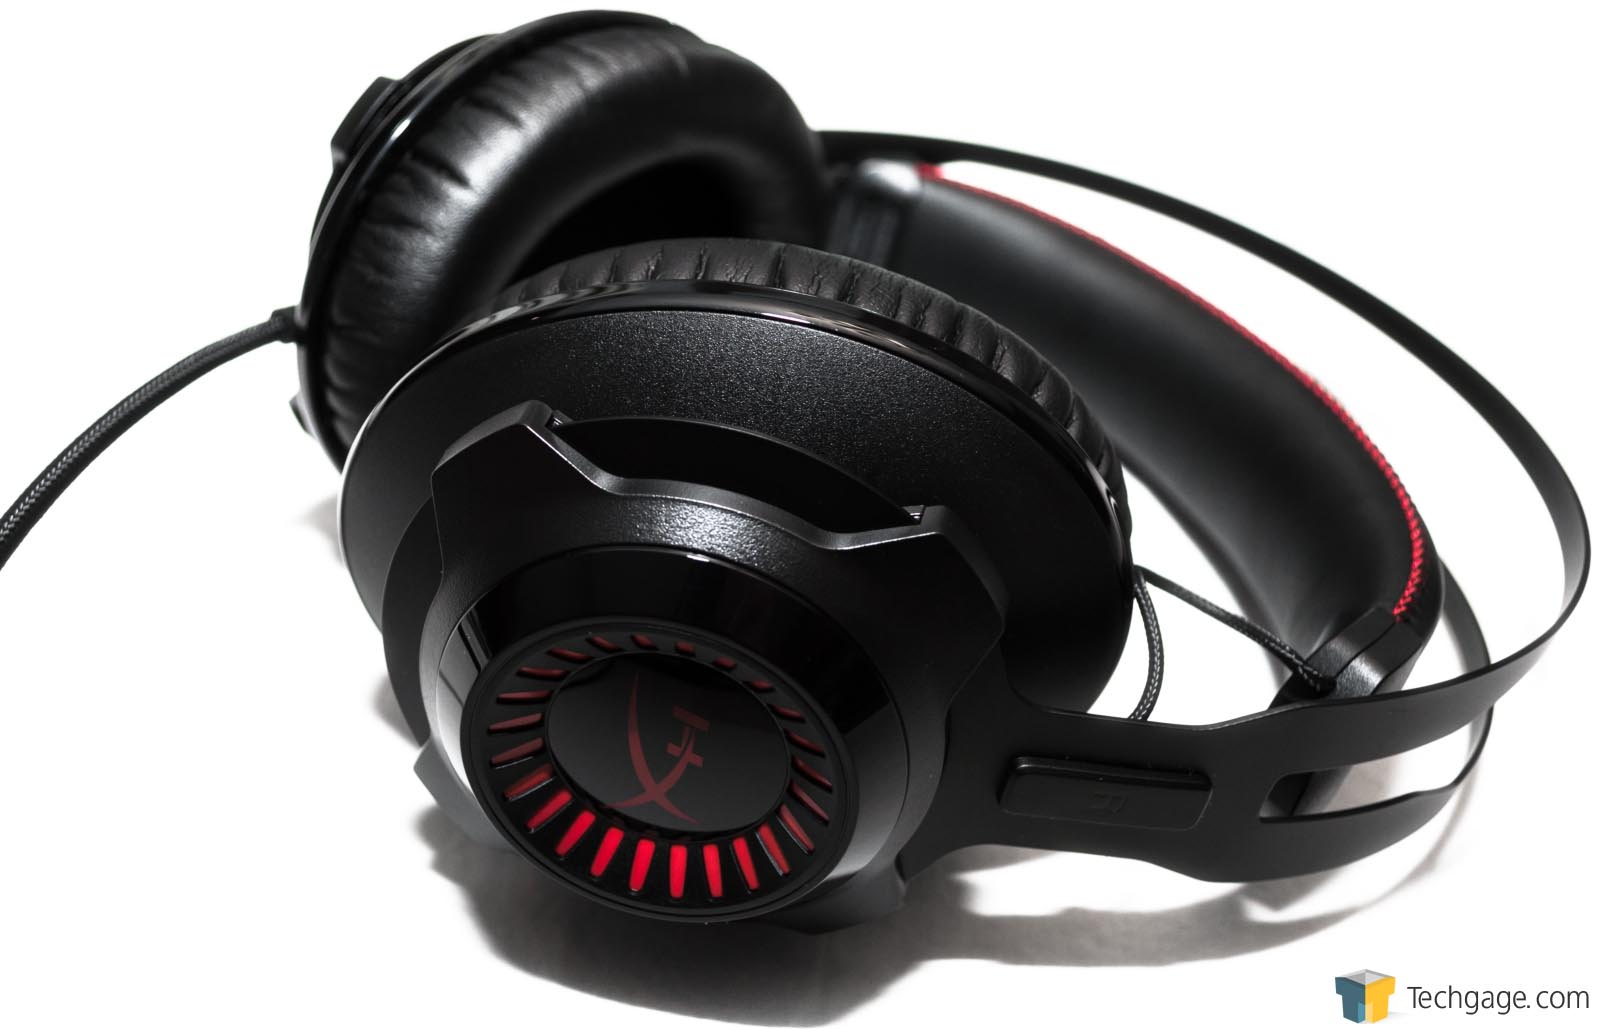 Comfort And Style Meet High Fidelity – A Review Of The Hyper X Cloud Revolver Gaming Headset ...